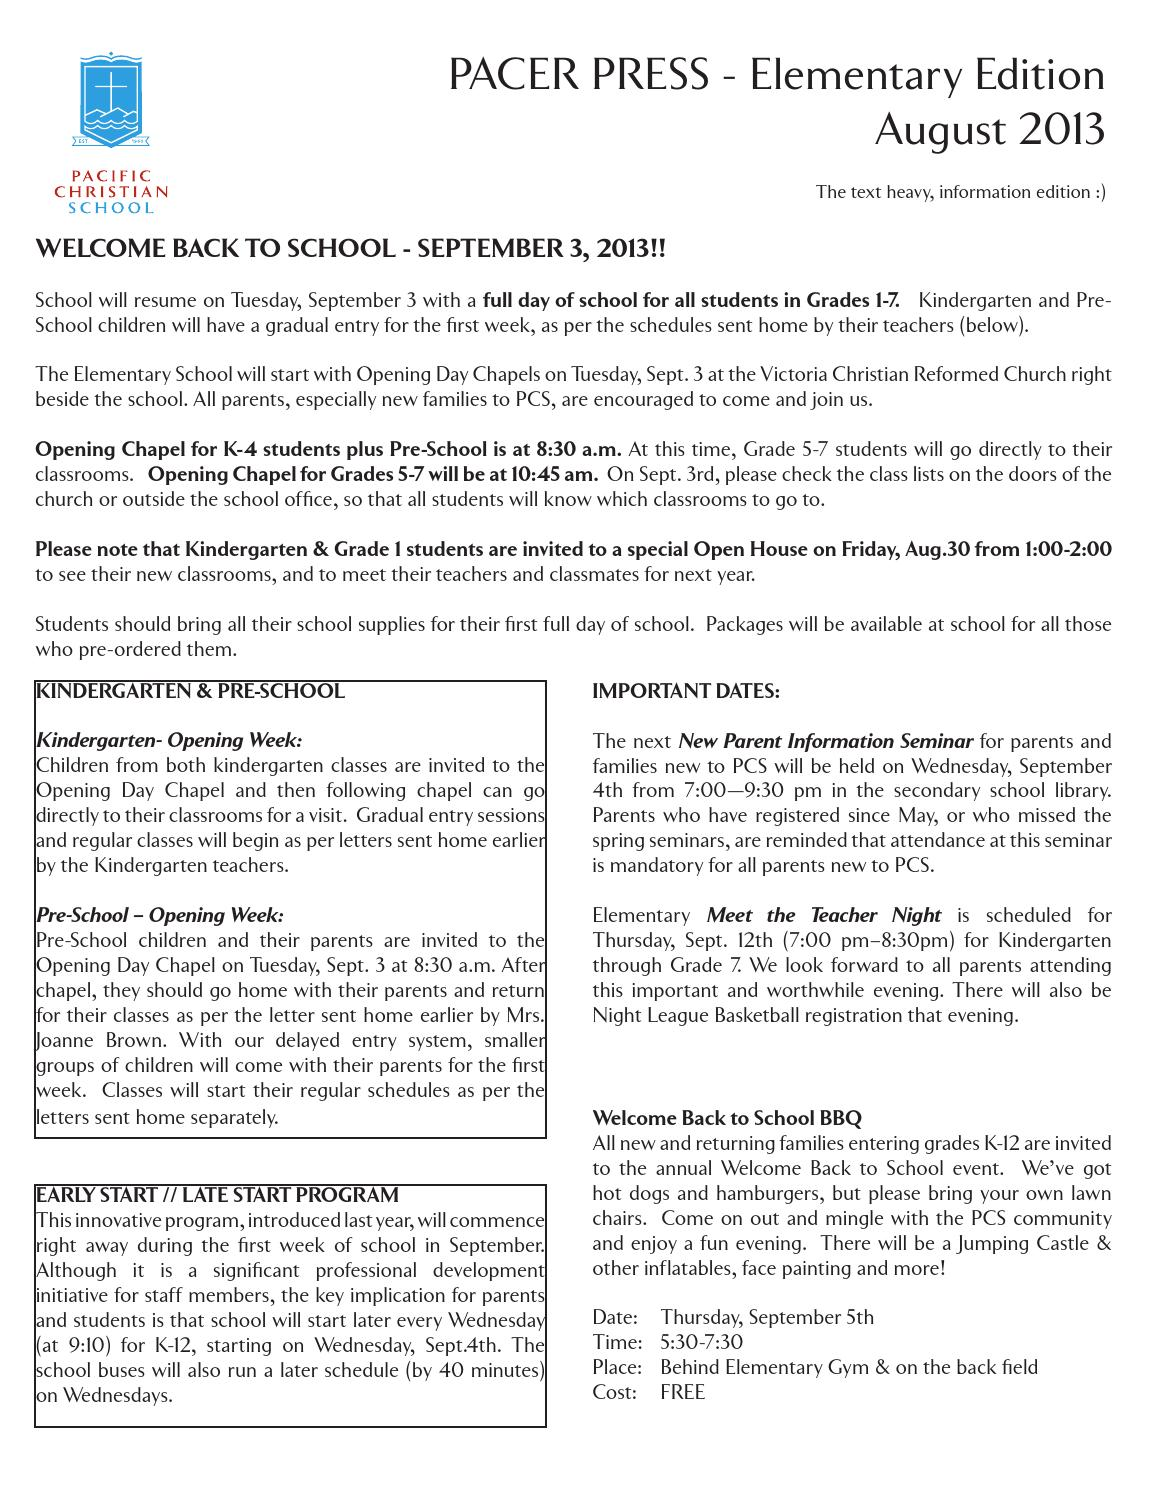 August 2013 Pacer Press - Elementary Edition by Pacific Christian